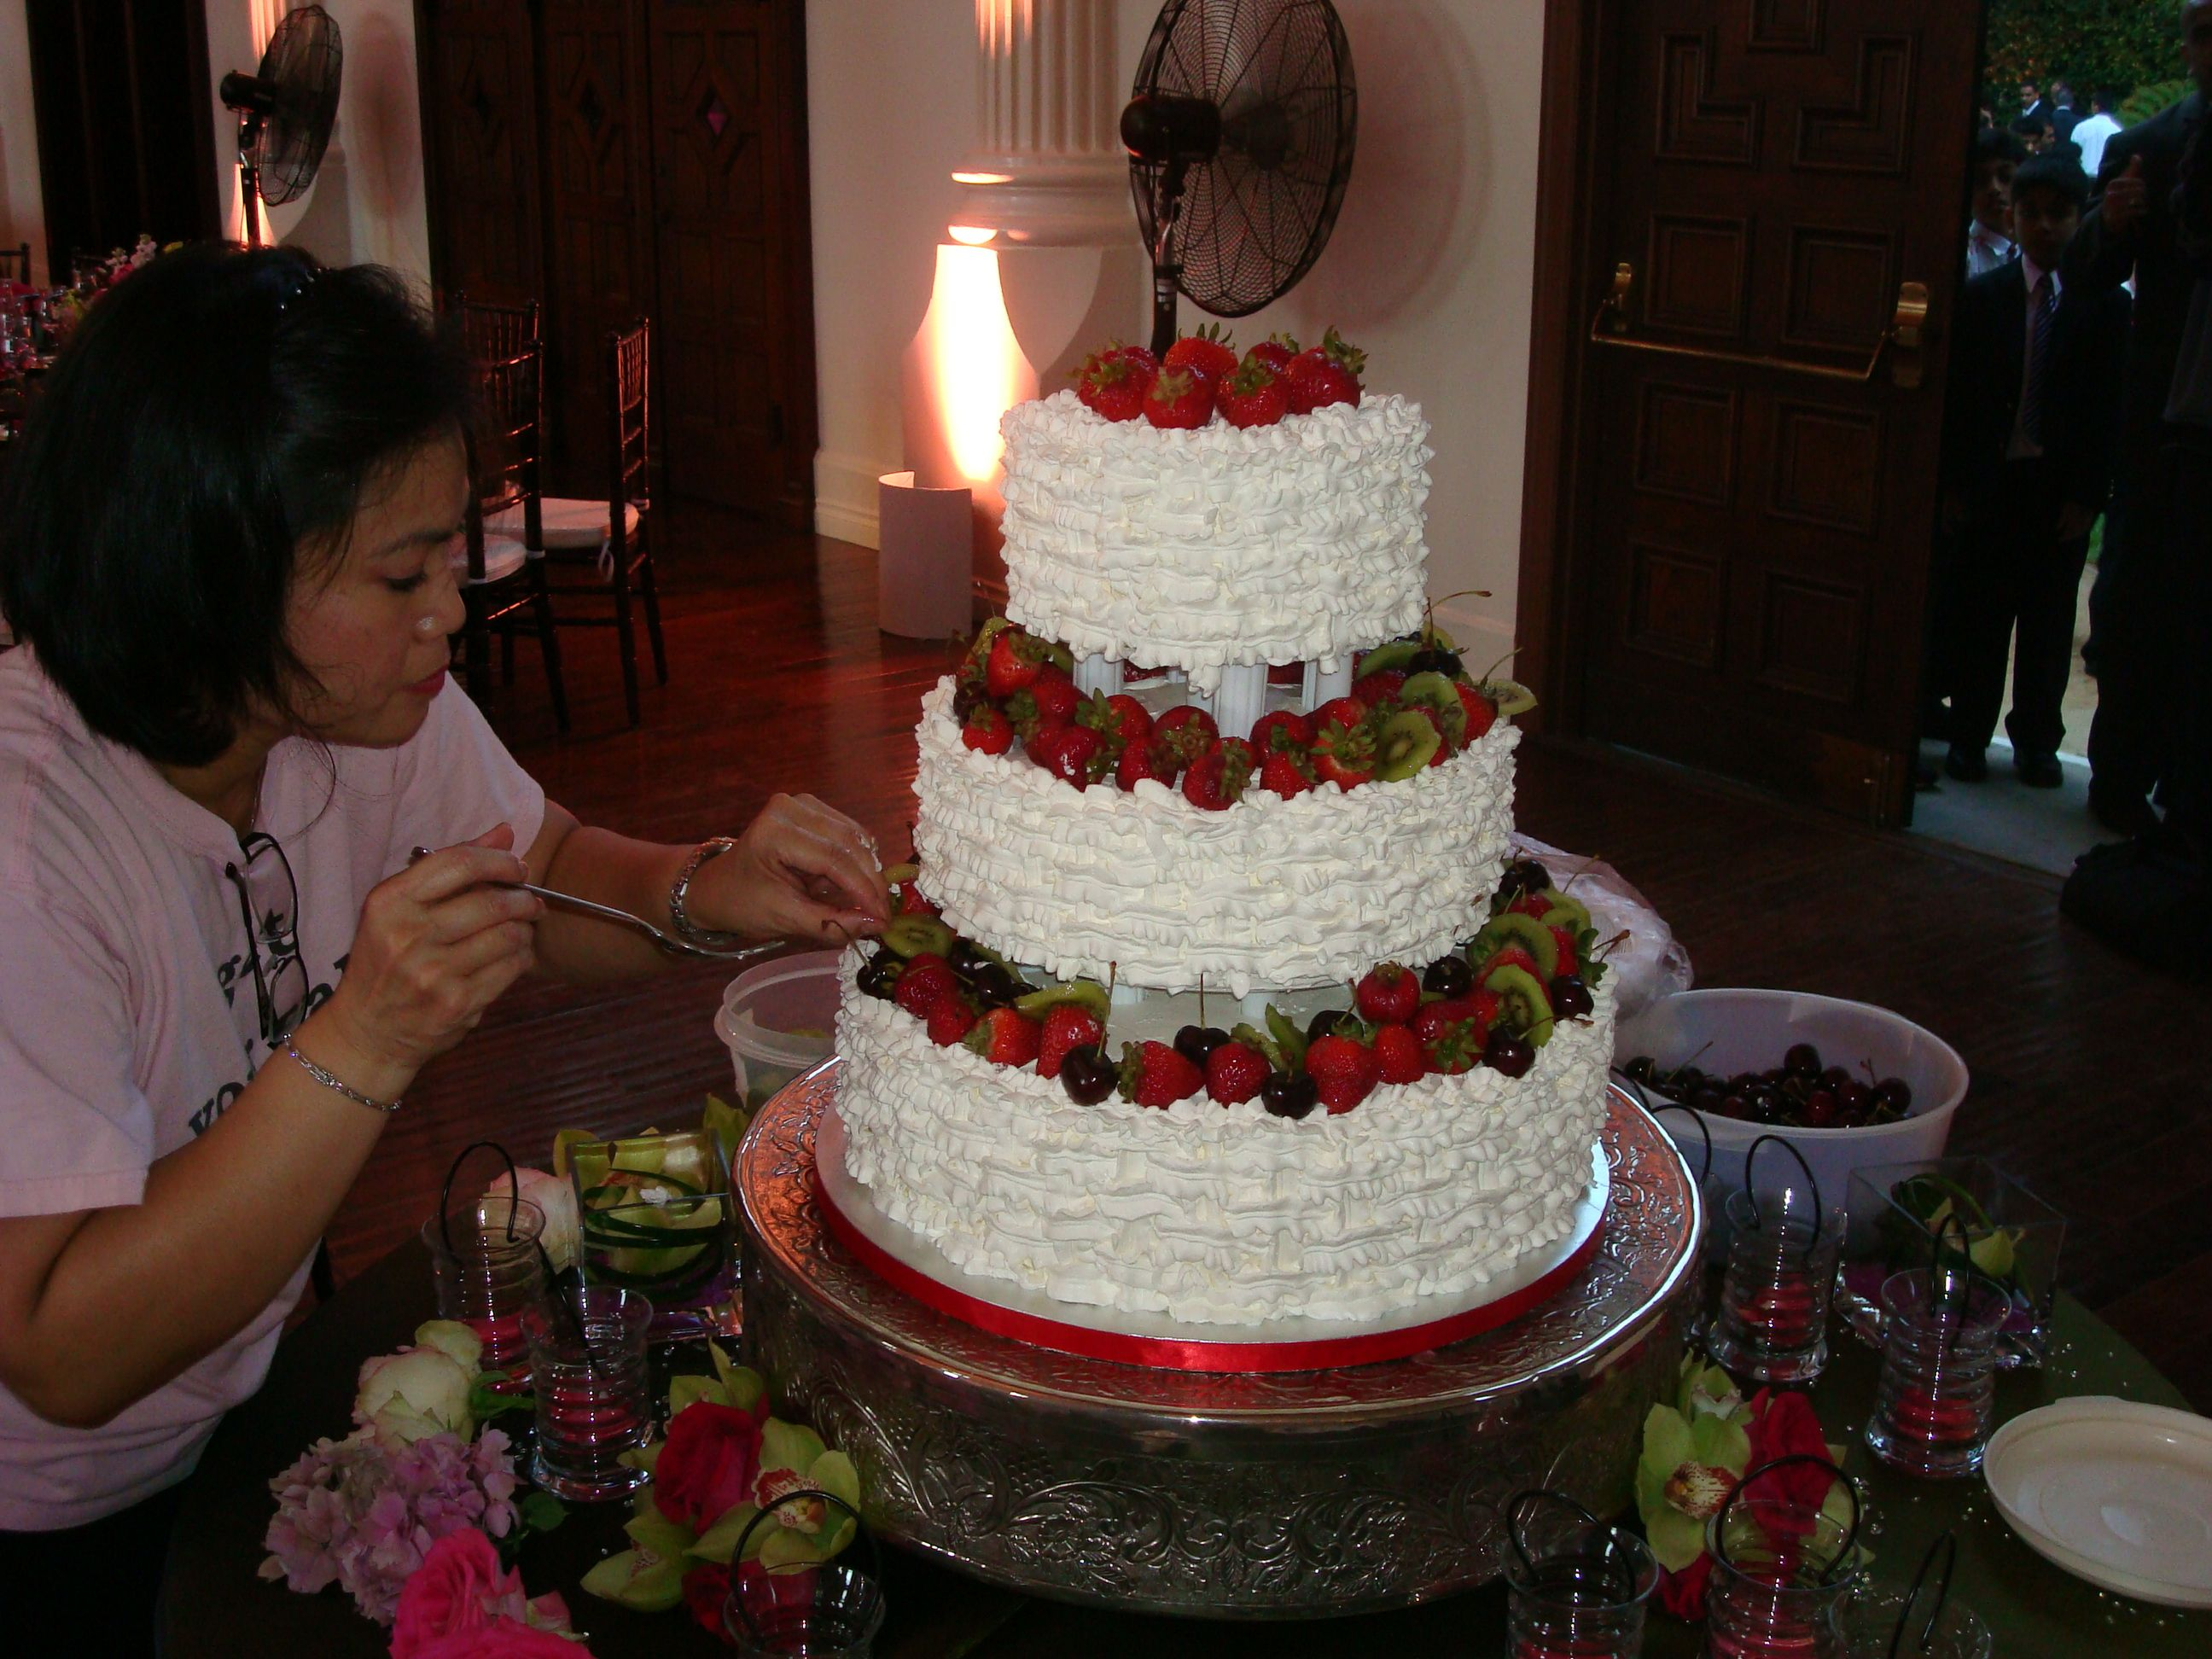 Forheavenscakes we push the artistry of the cake creation to new